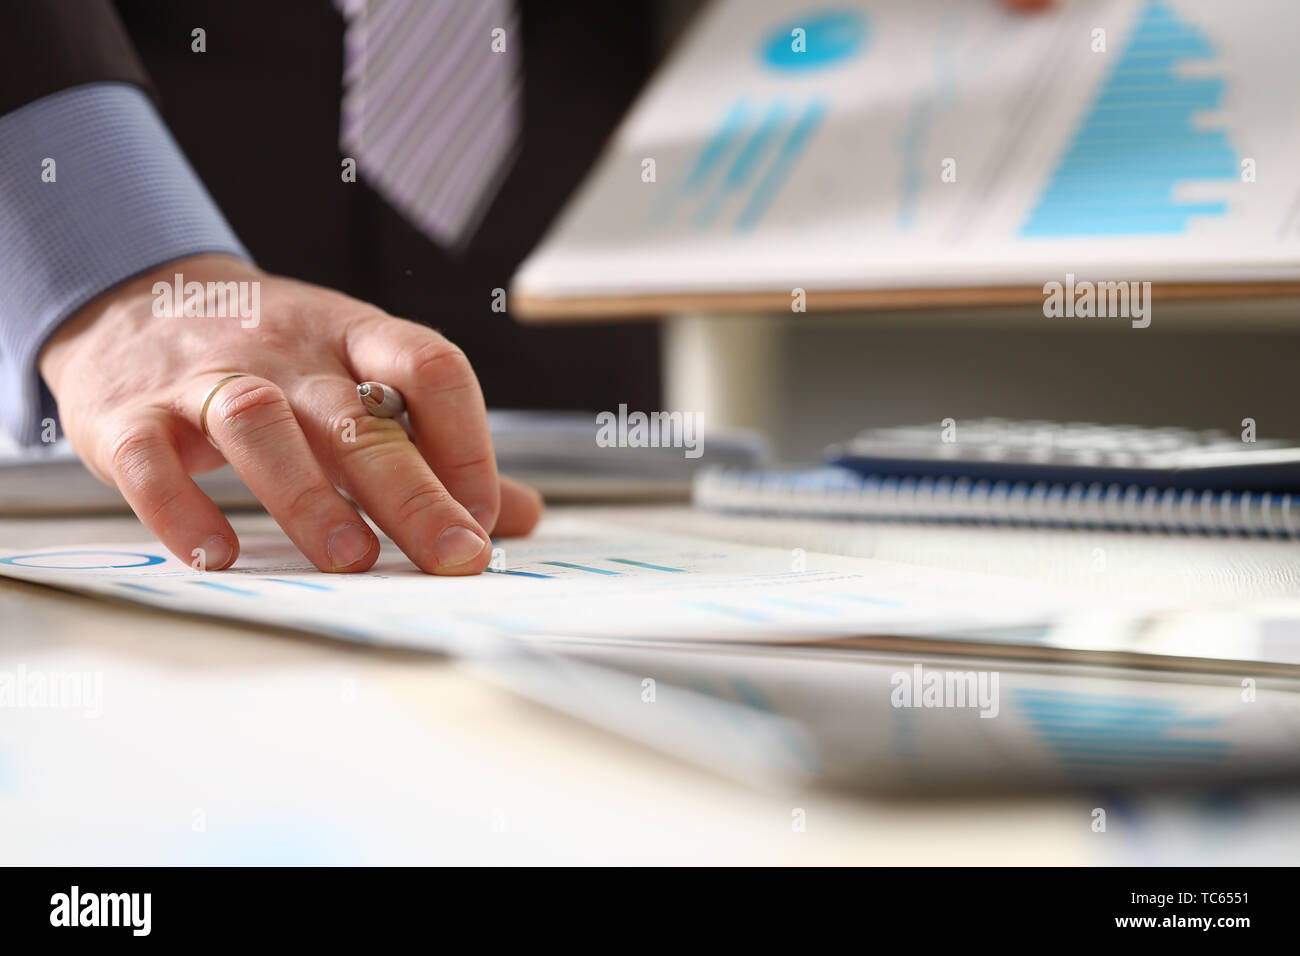 Person Controlling Prices Rise Accounting Income - Stock Image